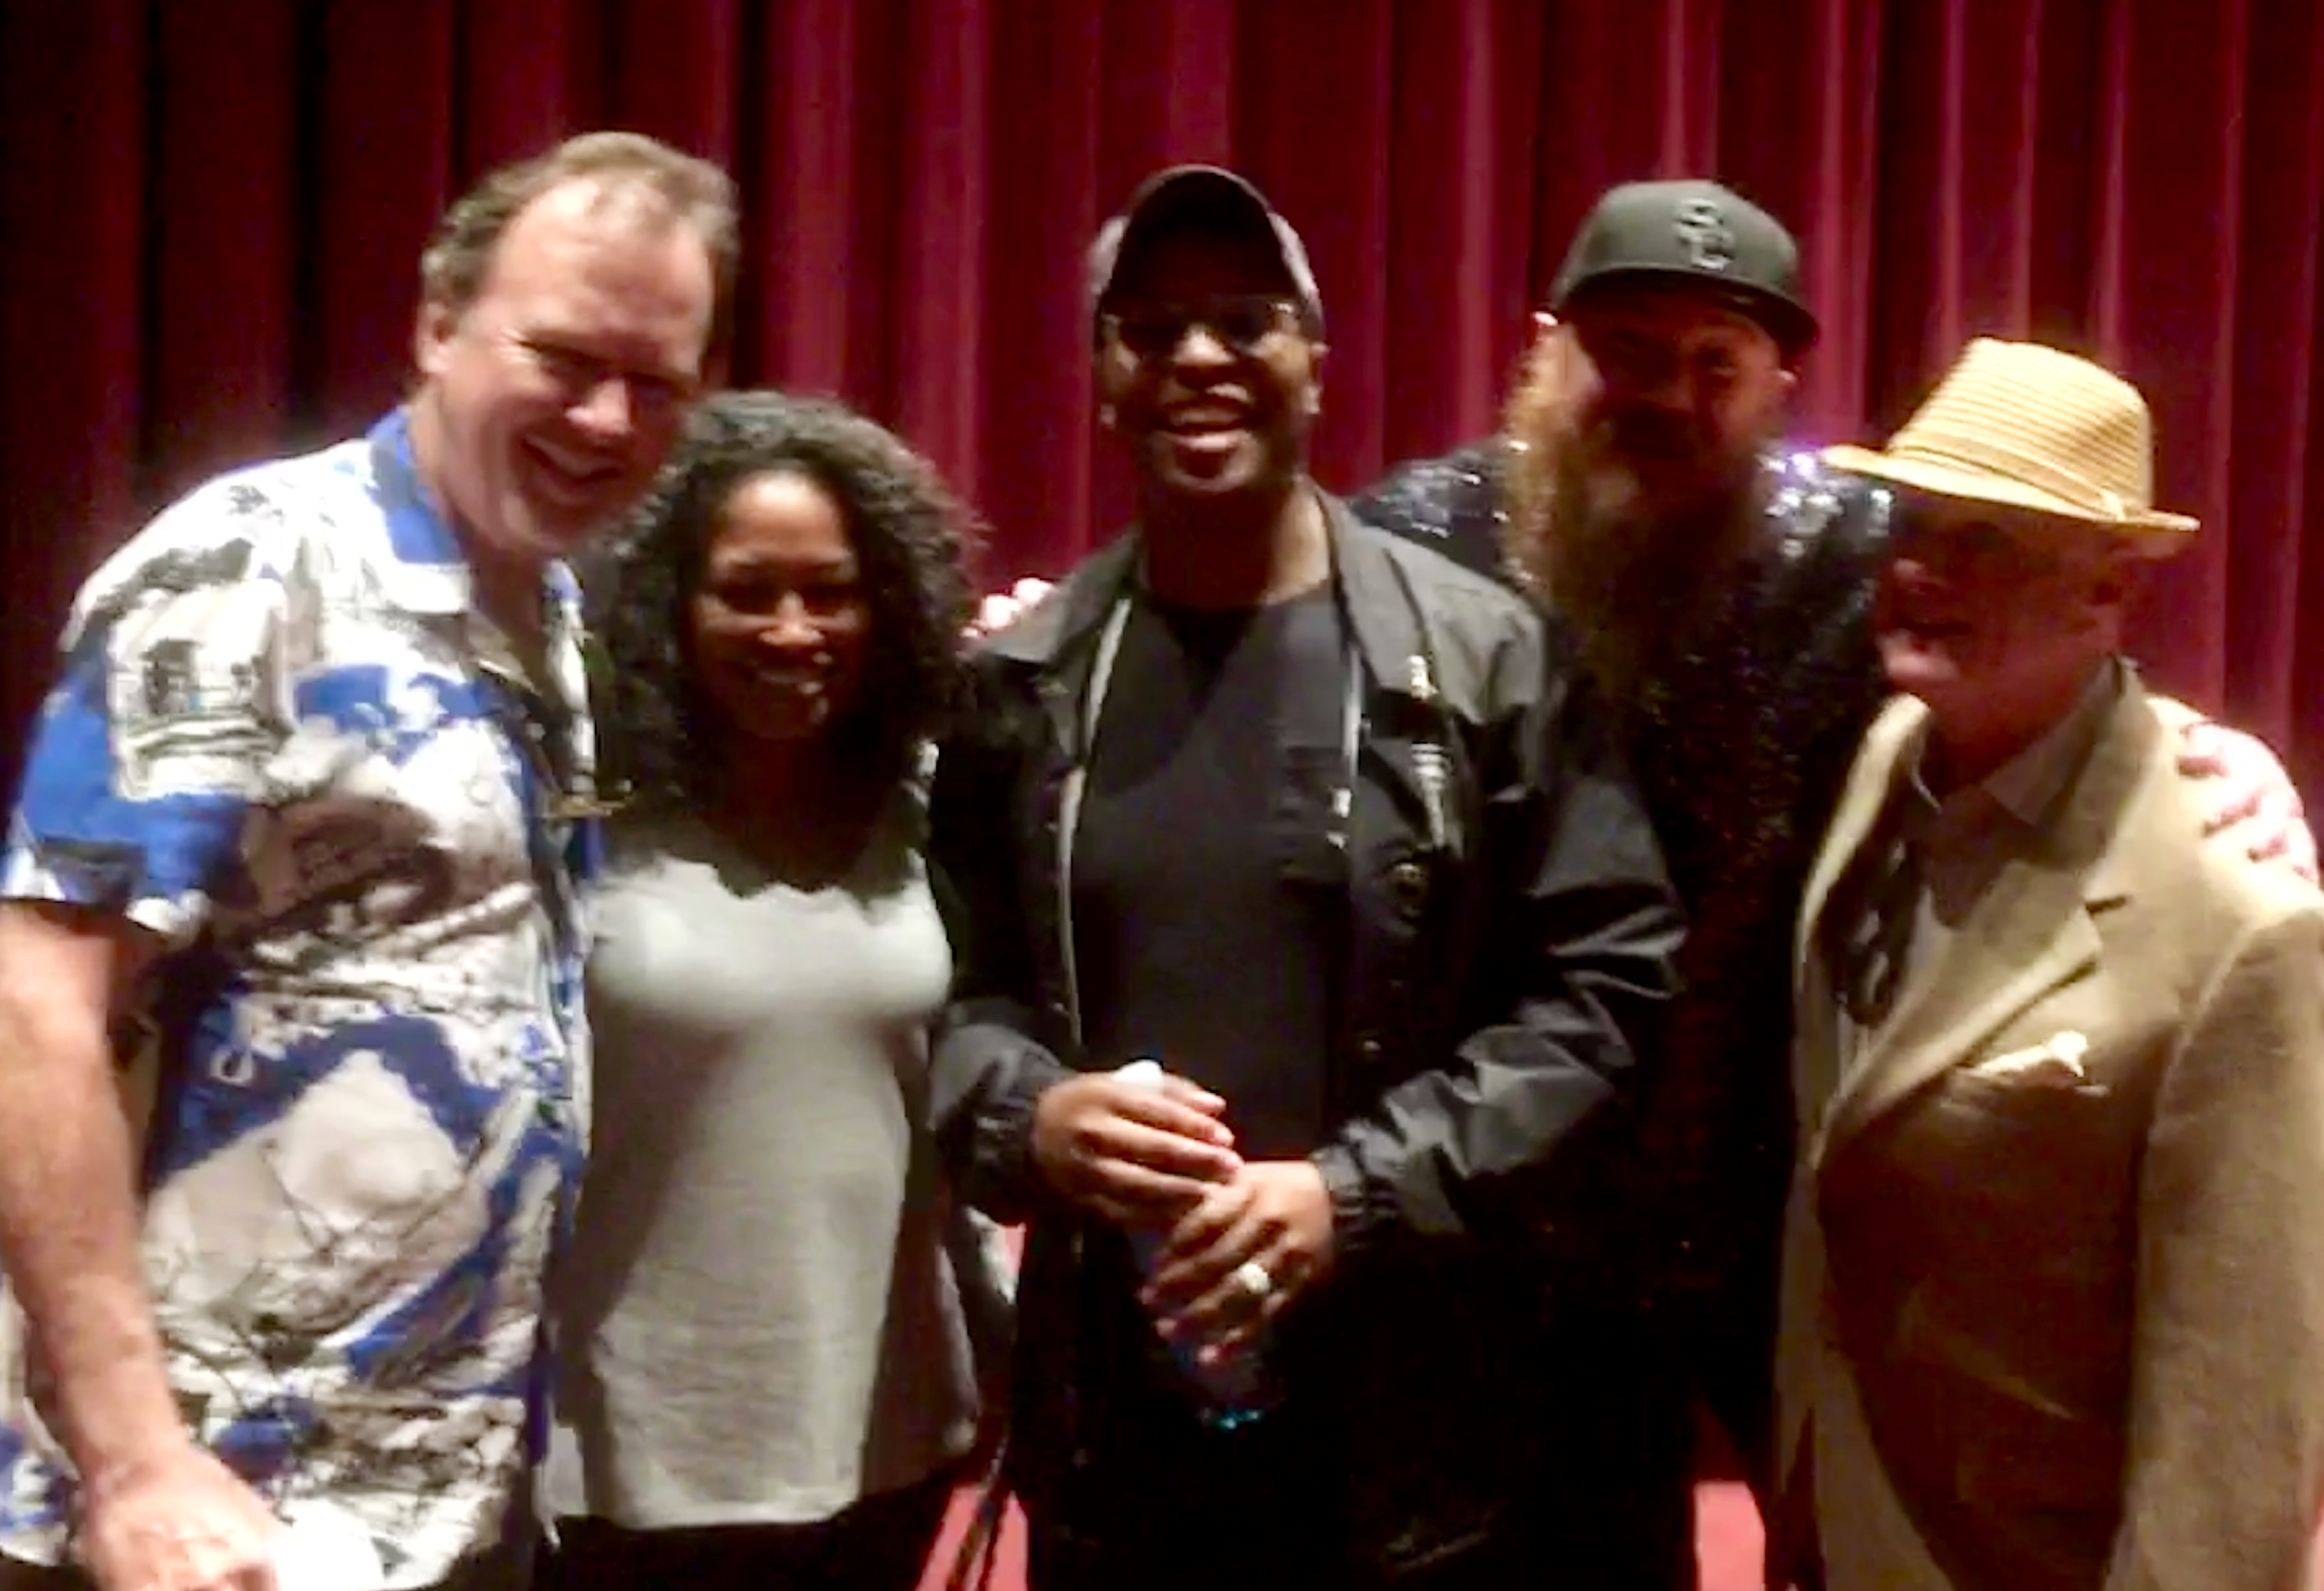 Dusty Trice with the cast and crew of BEAUREGARD at the USC premiere in 2019.